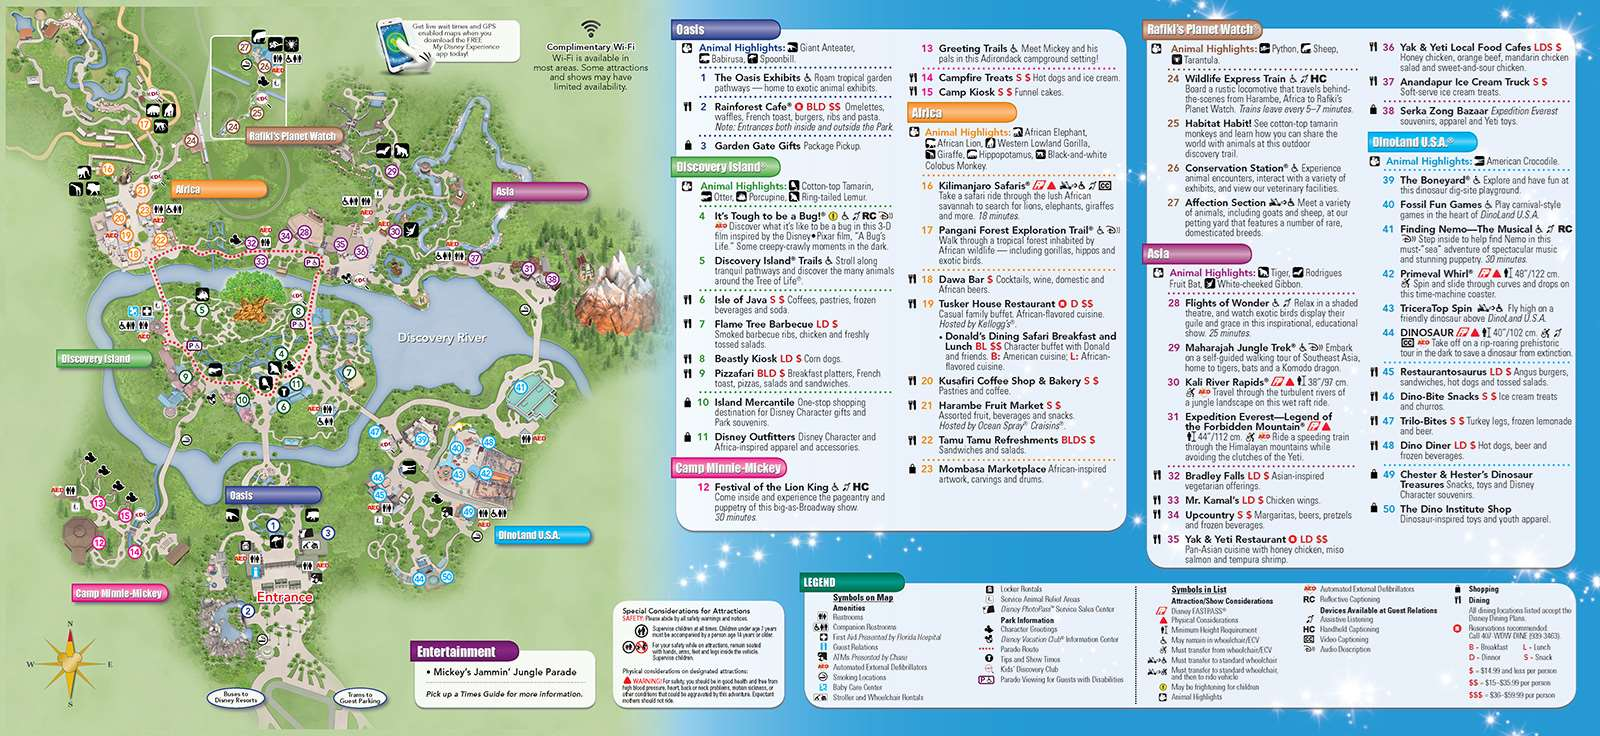 New 2013 Park Maps and Times Guides - Photo 2 of 20